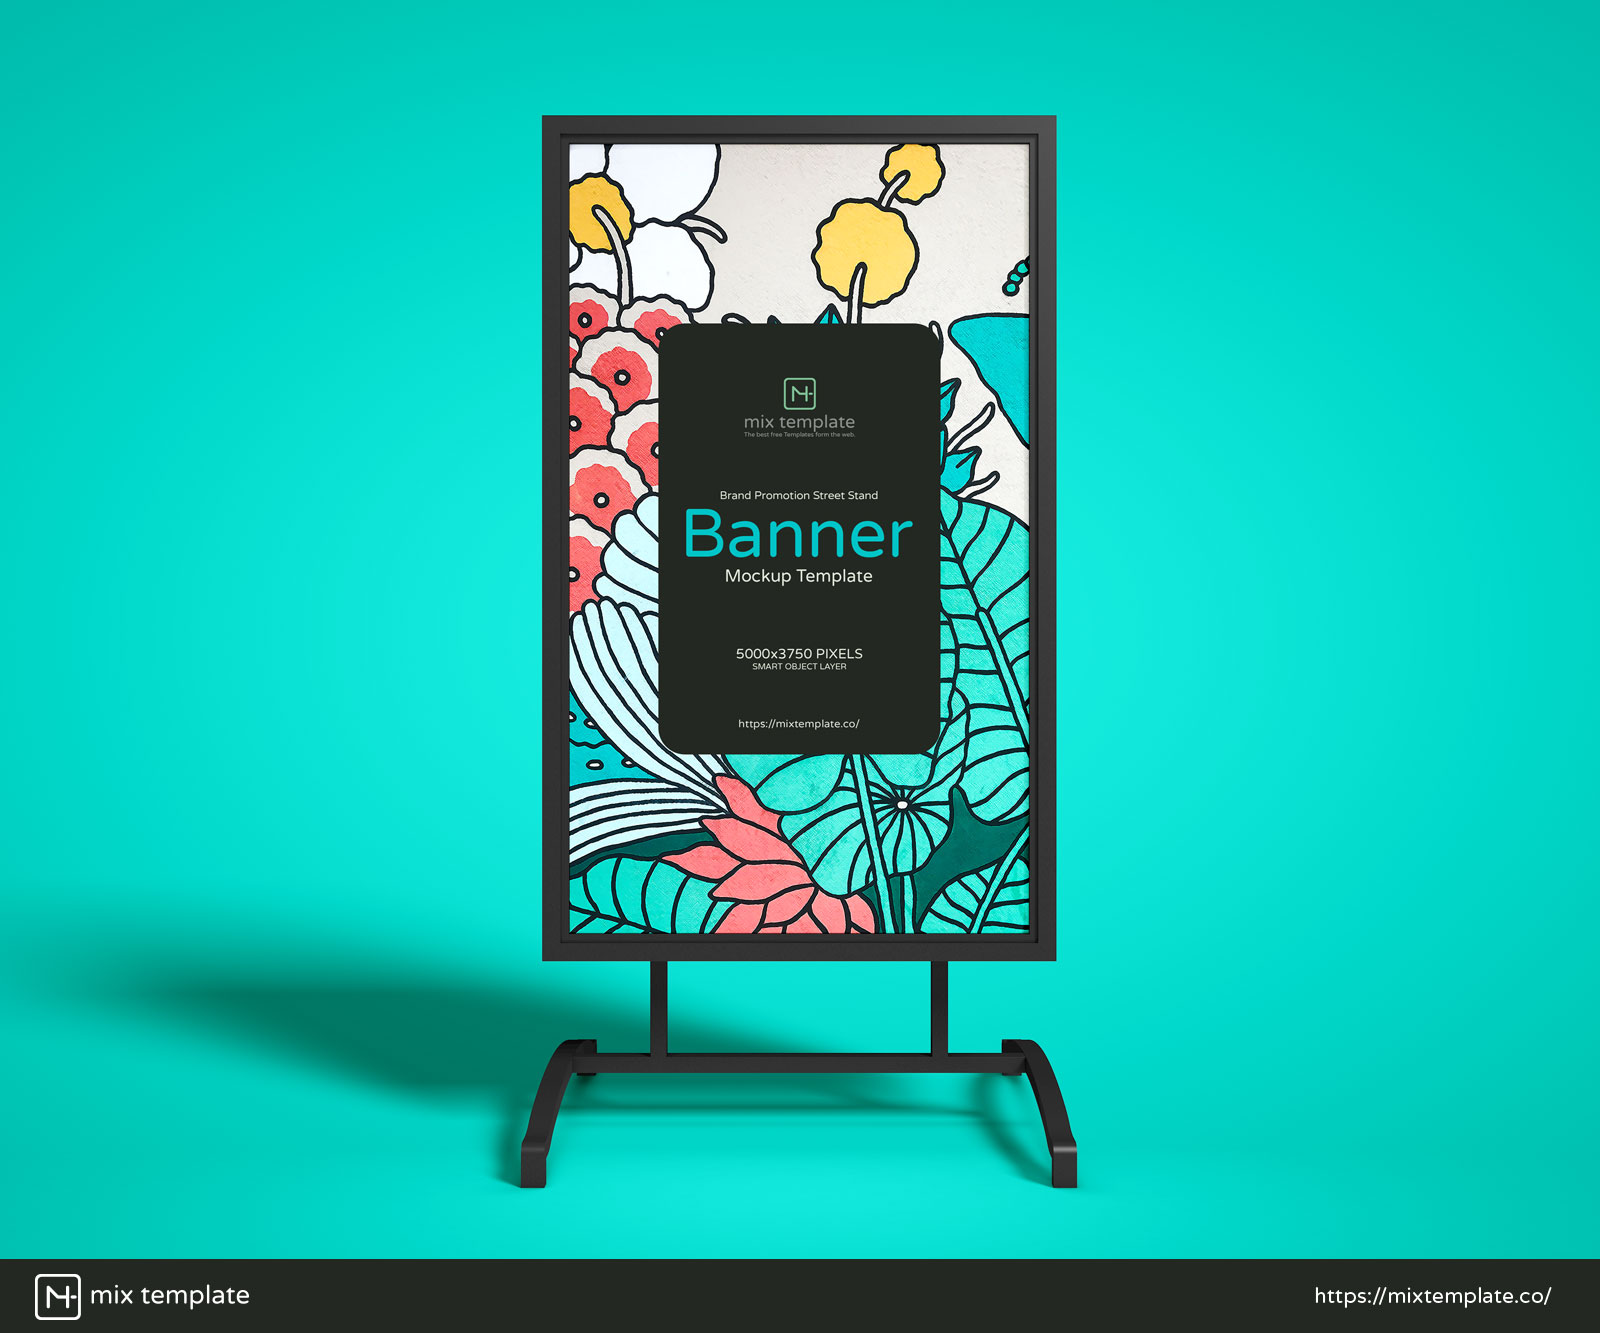 Free-Brand-Promotion-Street-Stand-Banner-Mockup-Template-38